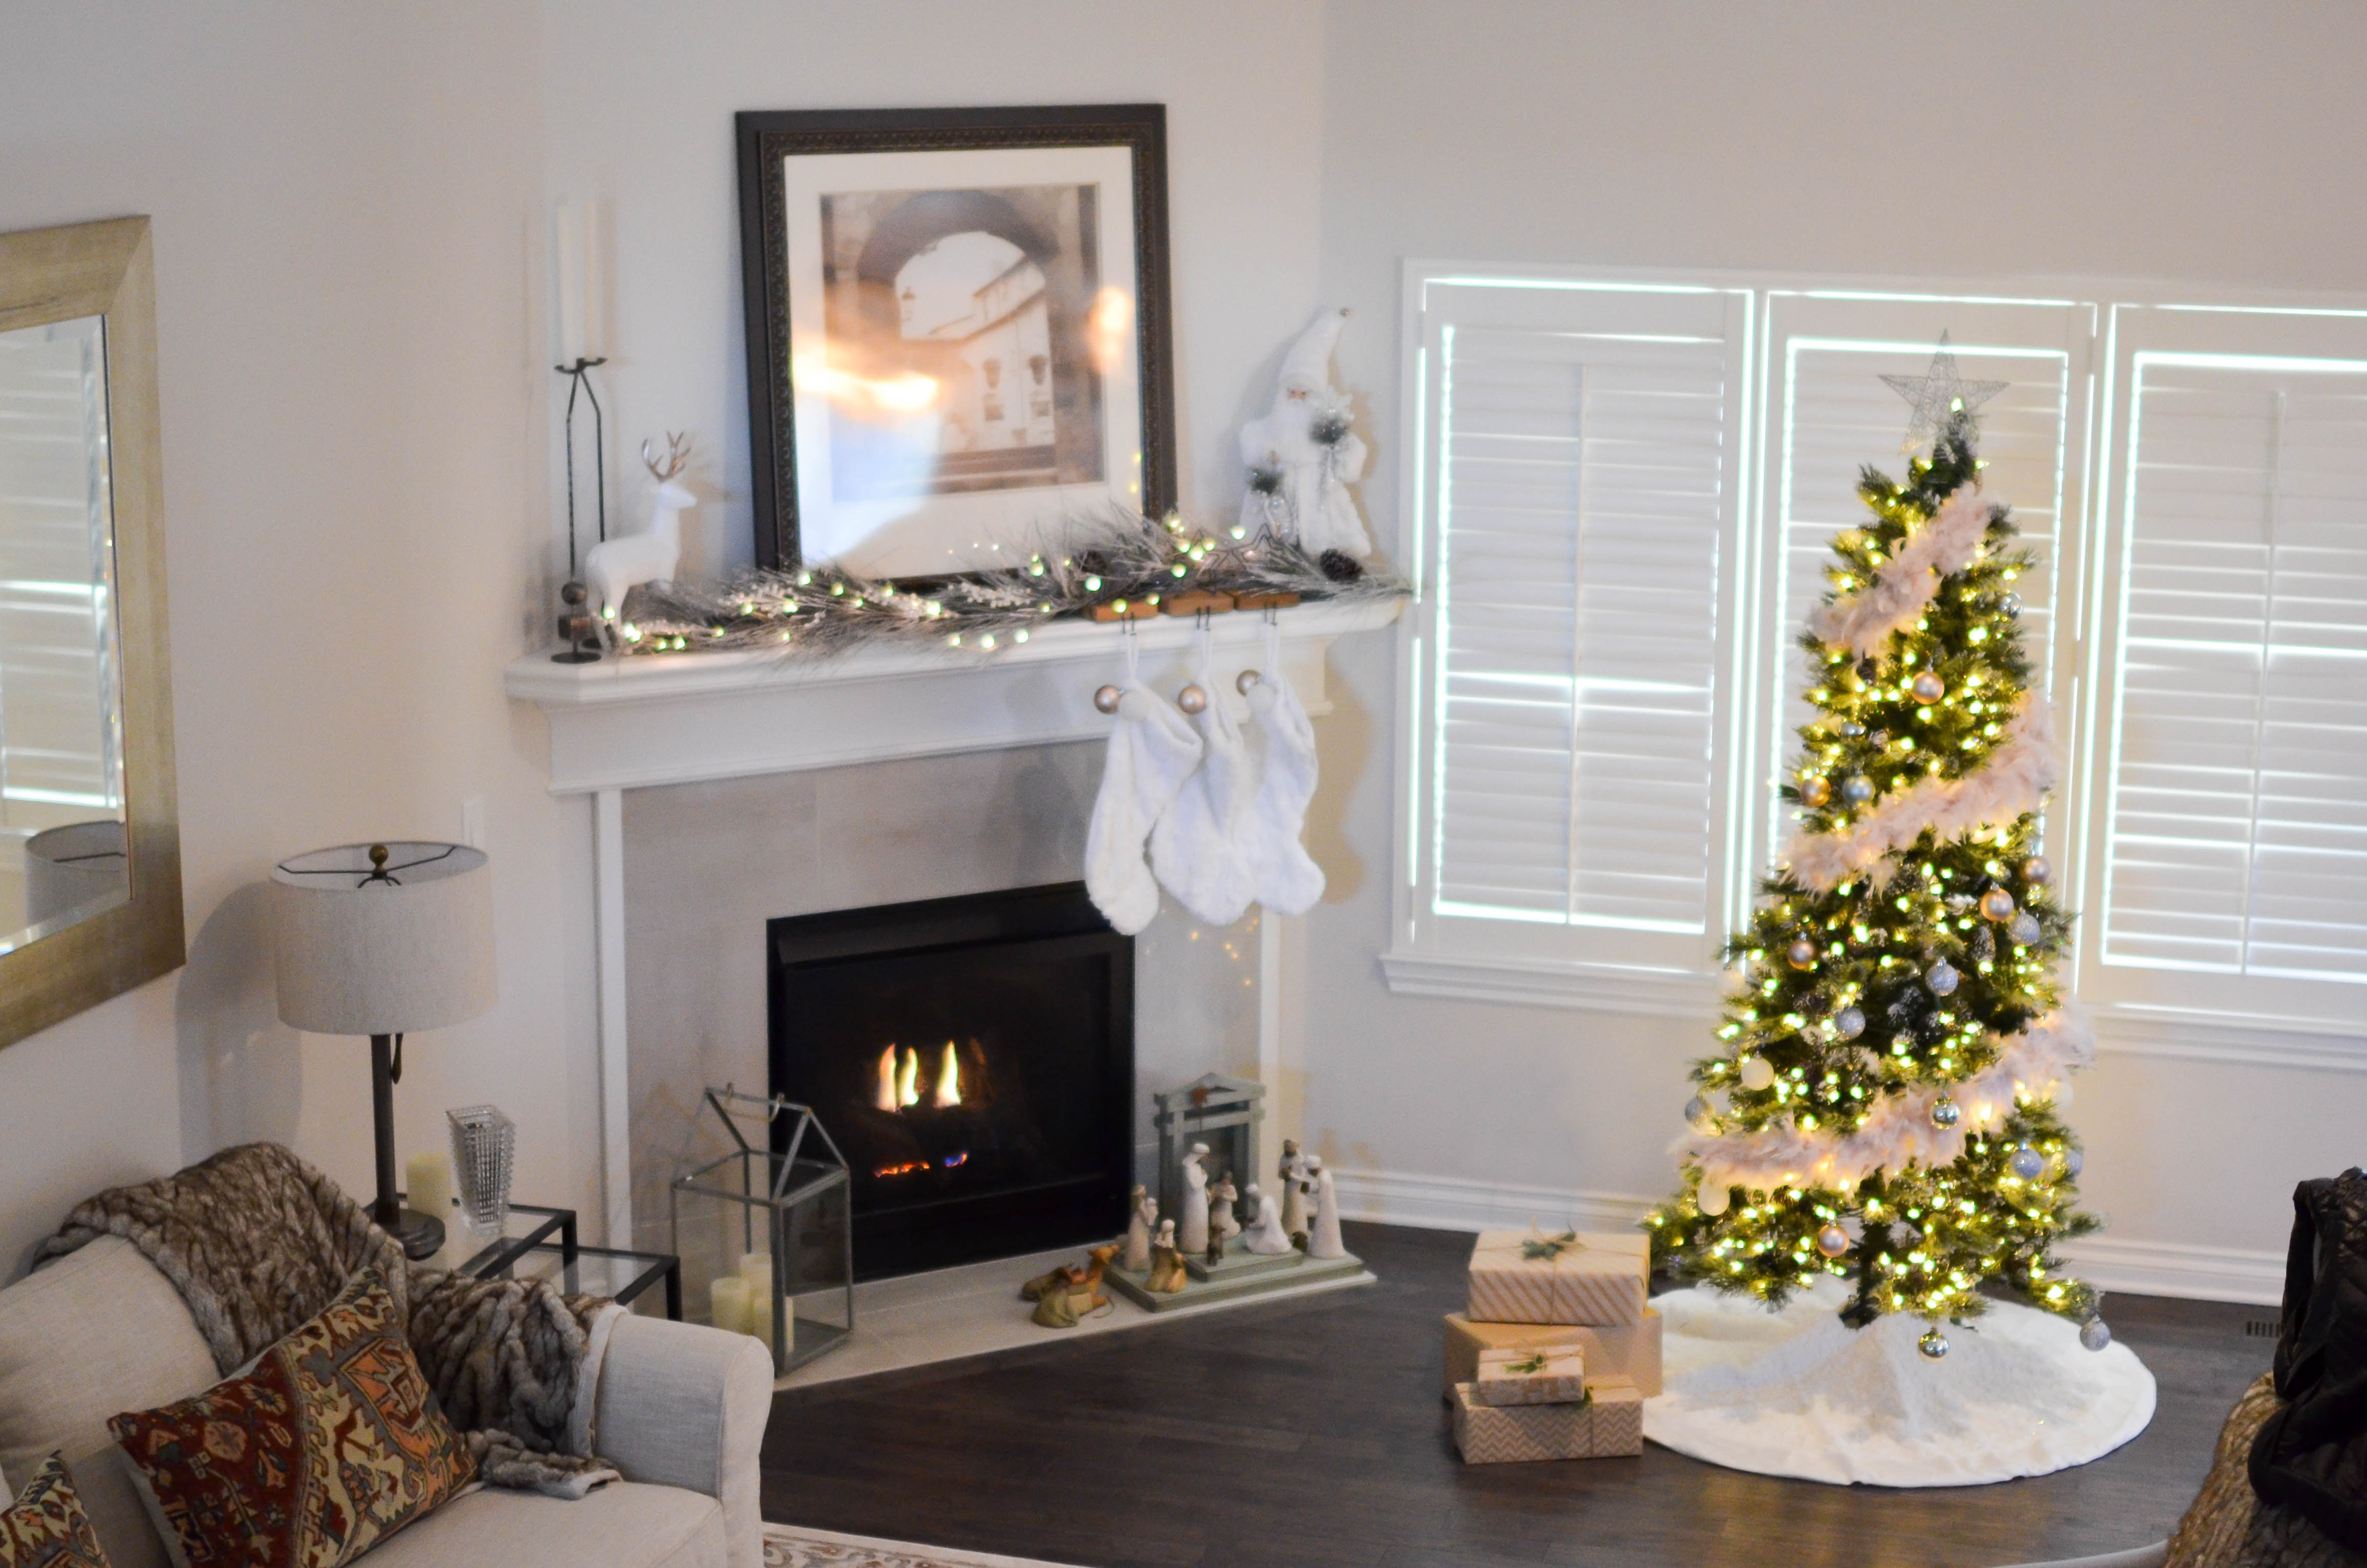 Christmas decorated room with tree, tinsel and fireplace